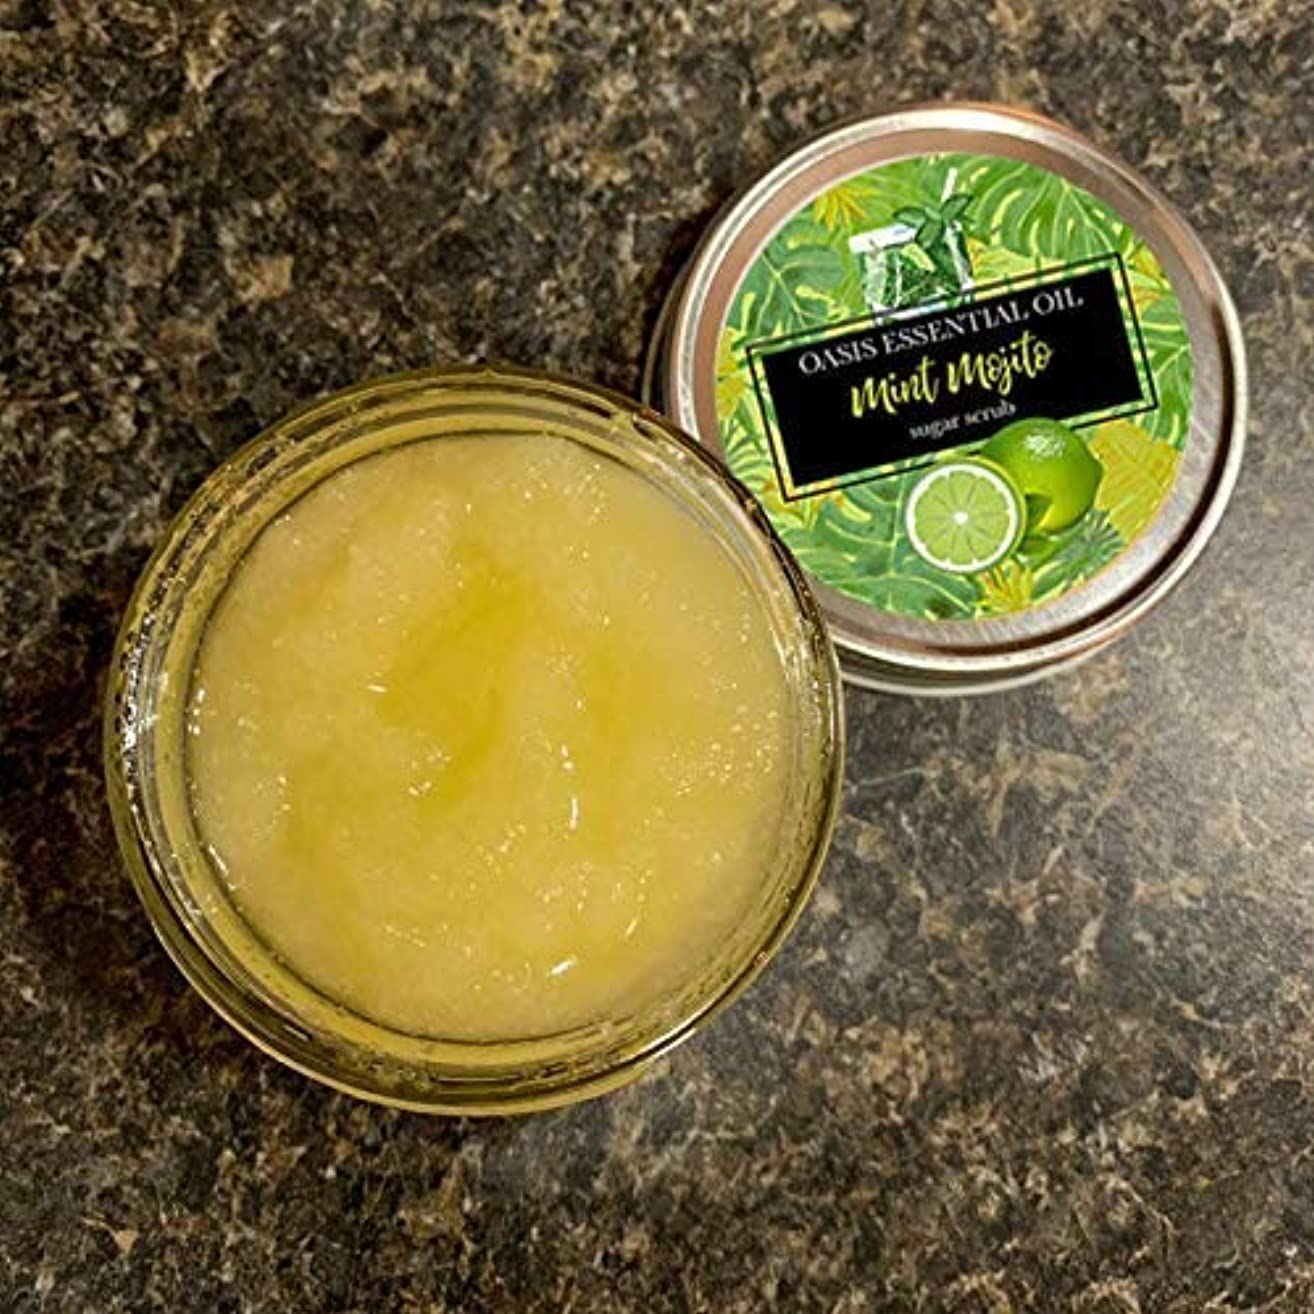 Mojito Sugar Scrub, 4 oz, Body Scrub, Lime, Peppermint, Lime Scrub, Peppermint Scrub, Body Polish, 4 ounce